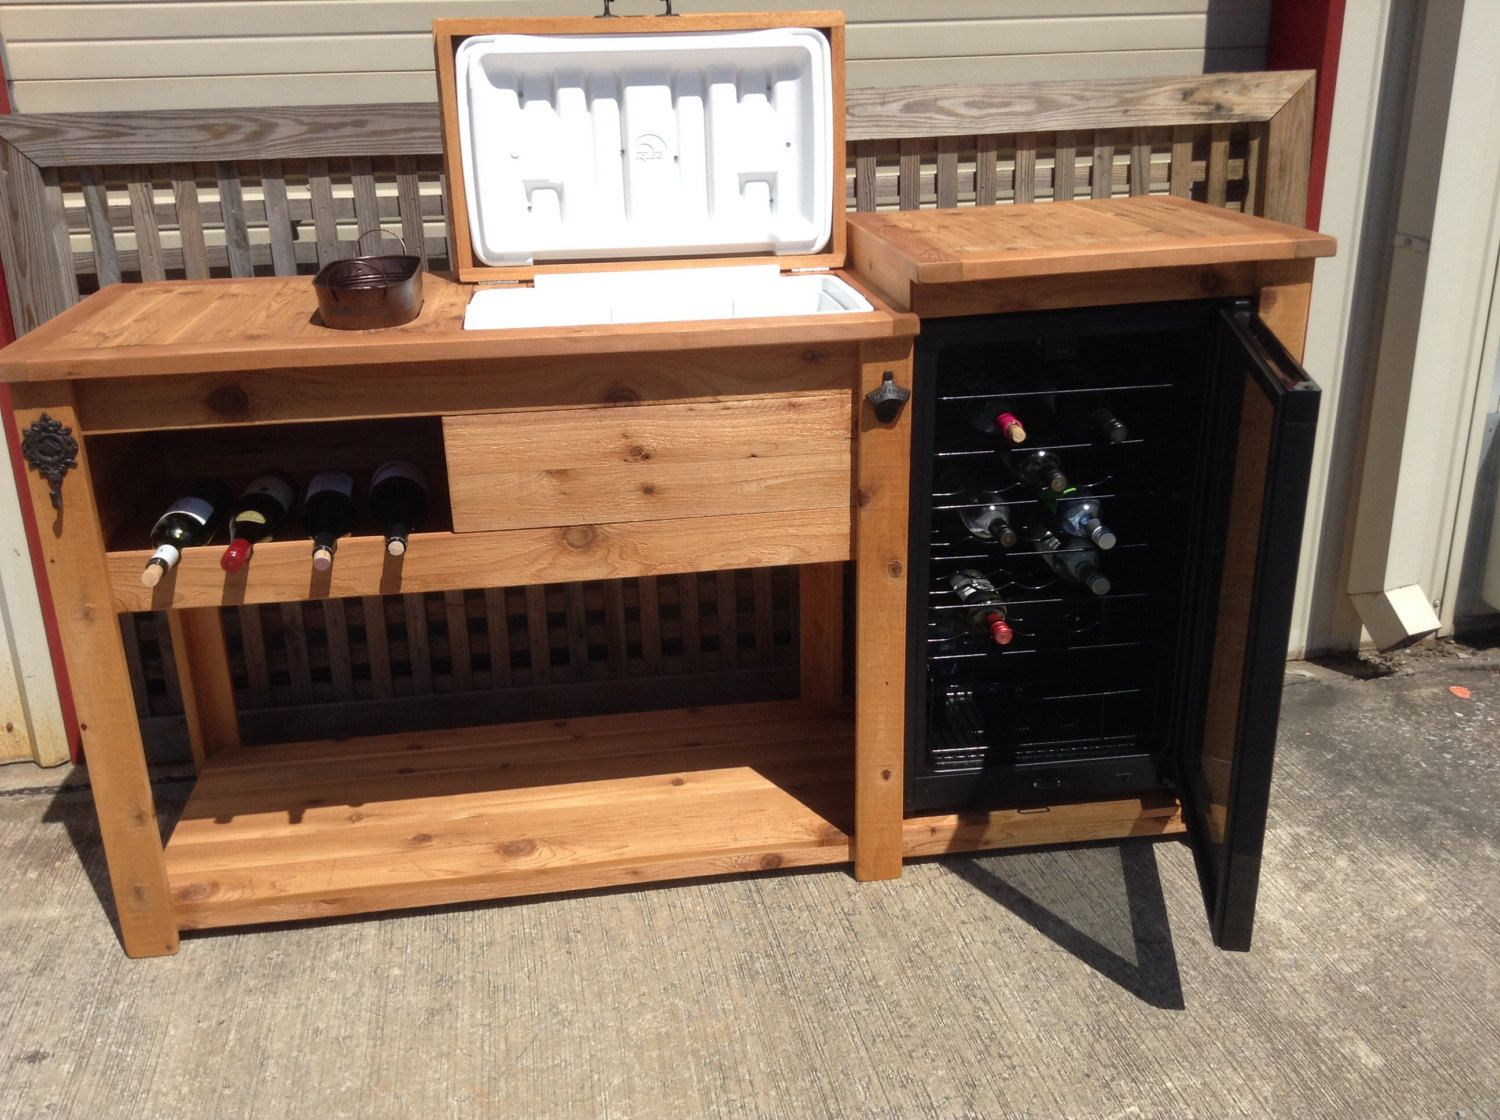 outdoor kitchen storage cart free standing pantry cabinet rustic wooden cooler table bar wine with mini